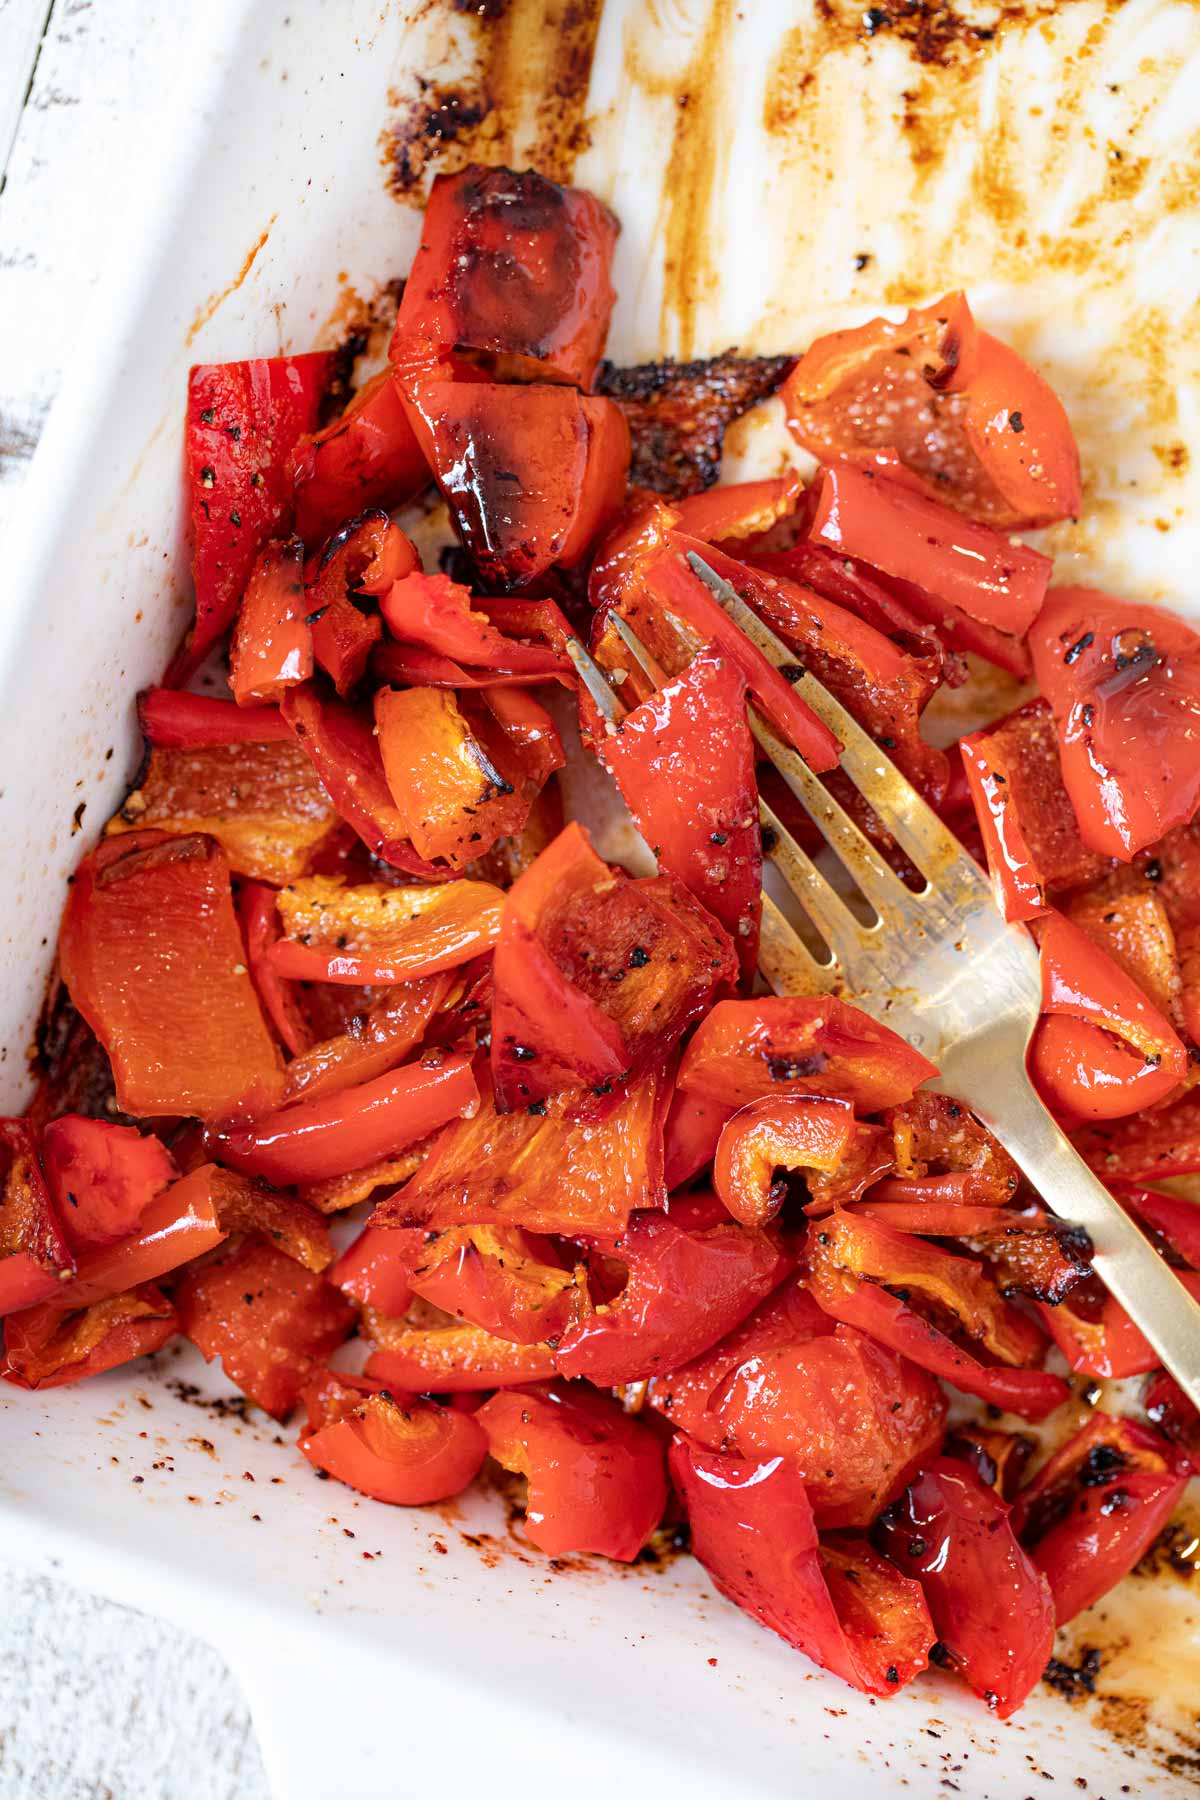 Roasted Red Bell Peppers in baking dish